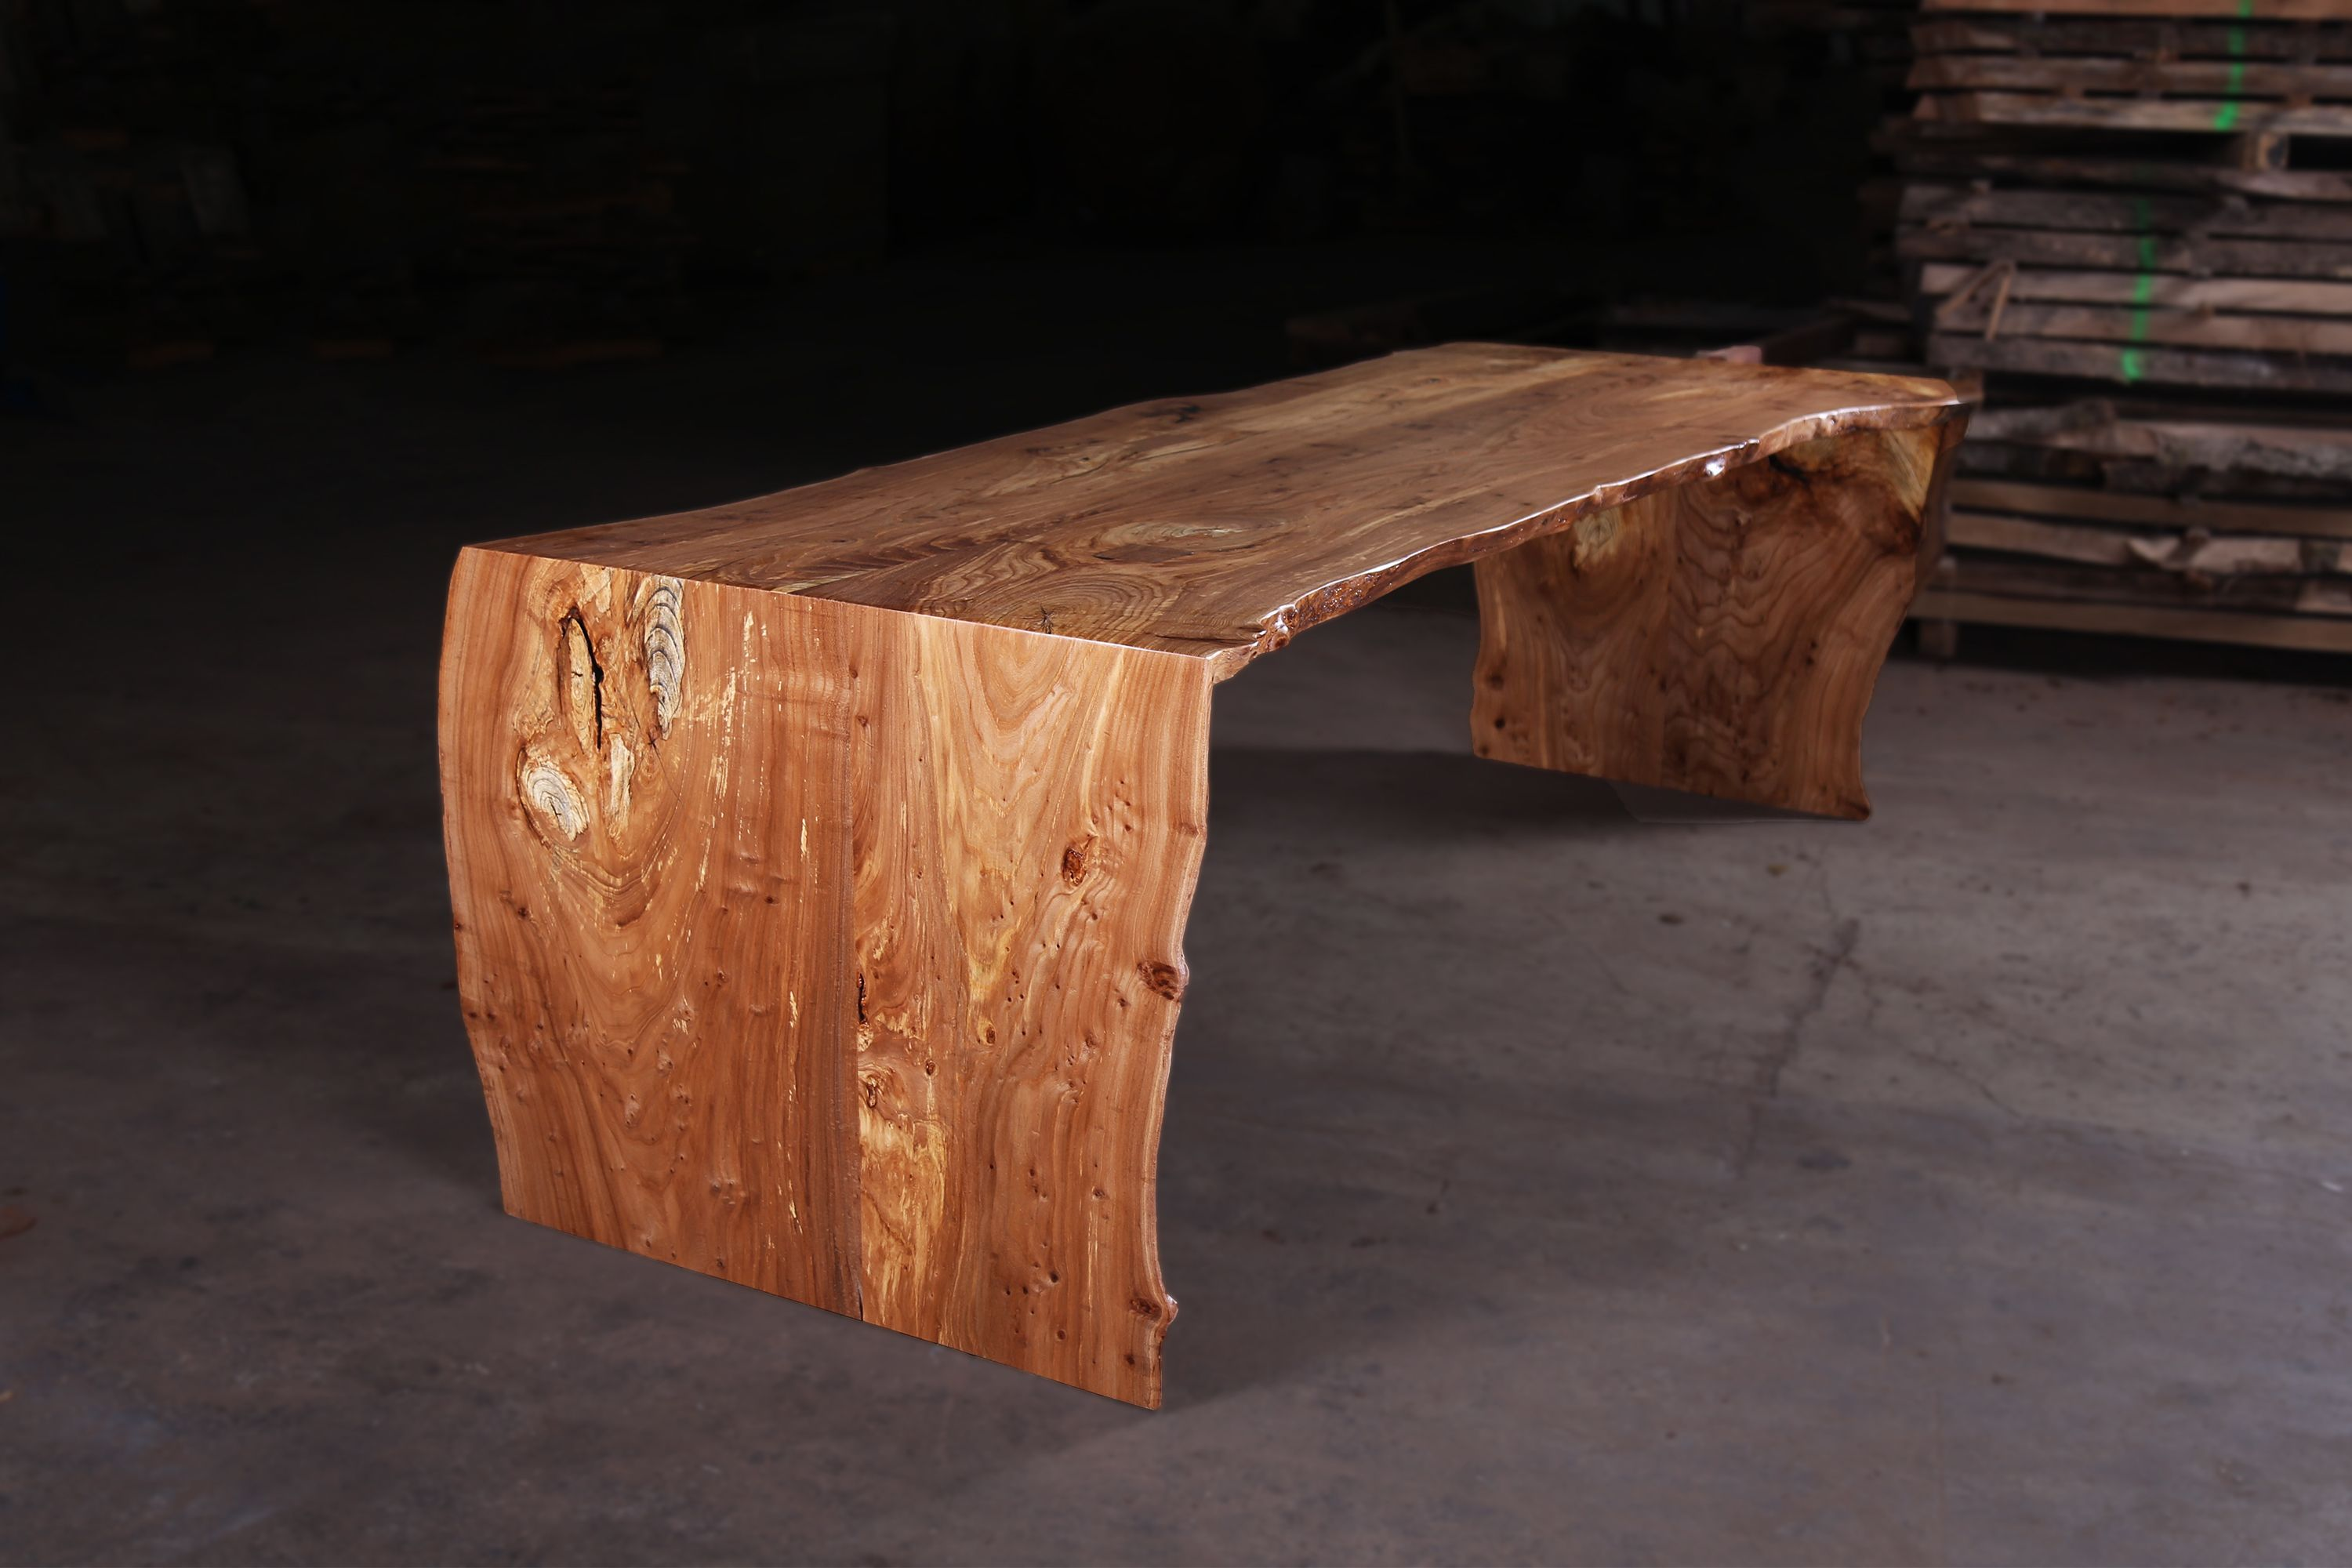 Sustainably Salvaged Elm Handmade Into A 6 Foot Long Live Edge Waterfall Dining Table This Table Also W Handmade Dining Table Furniture Hardwood Furniture